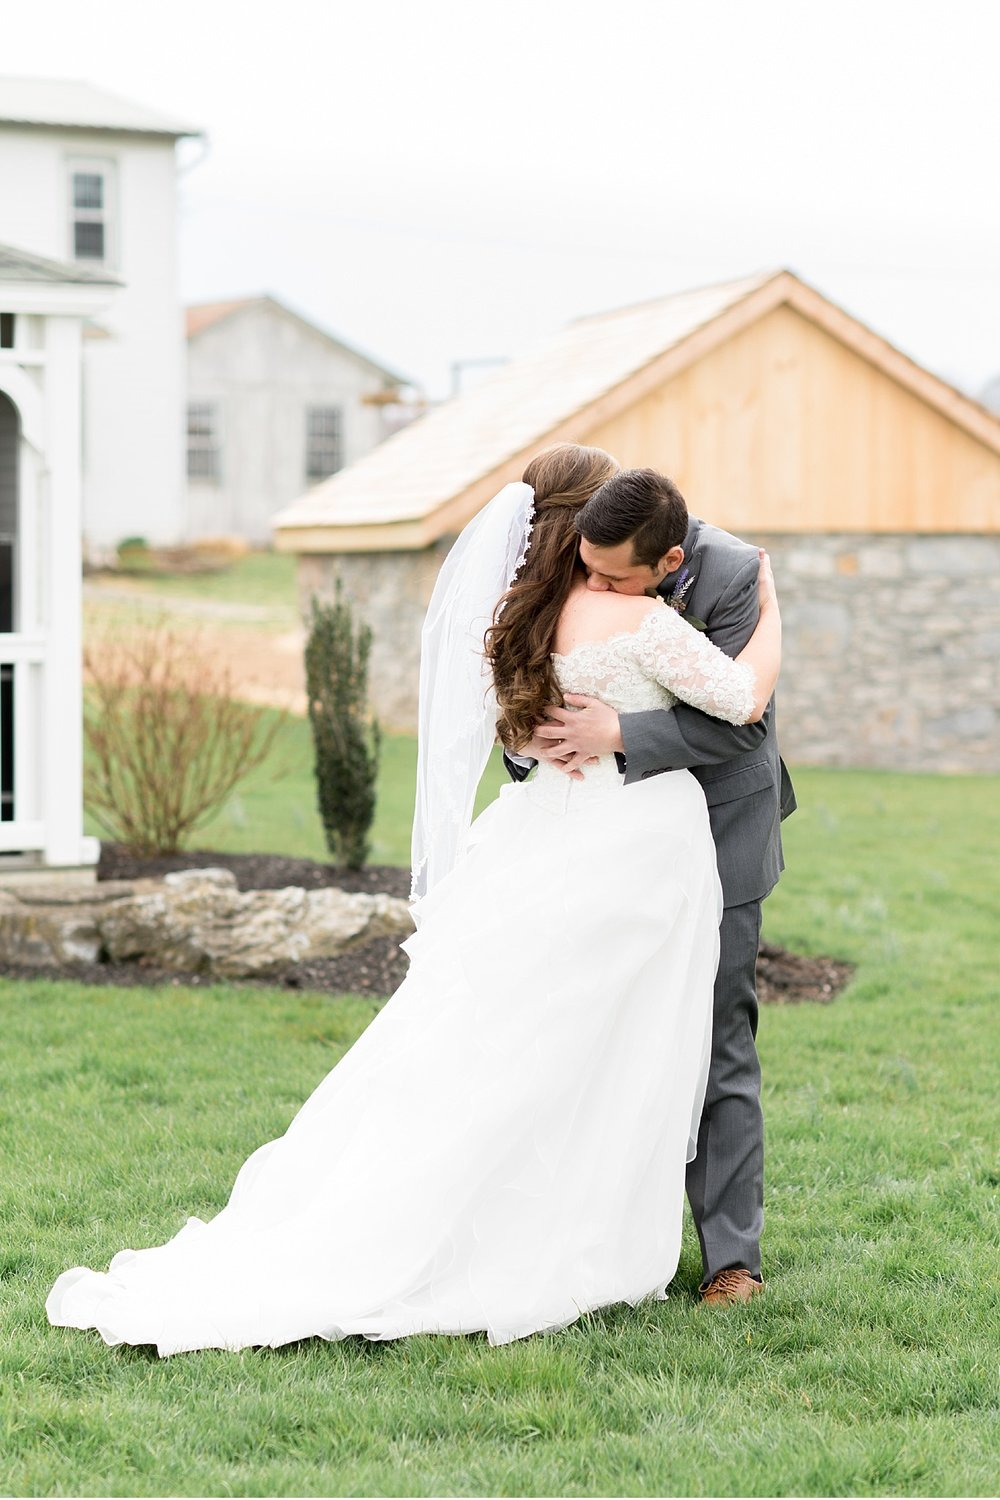 Springside Barn East Earl PA first look image wedding photography photo